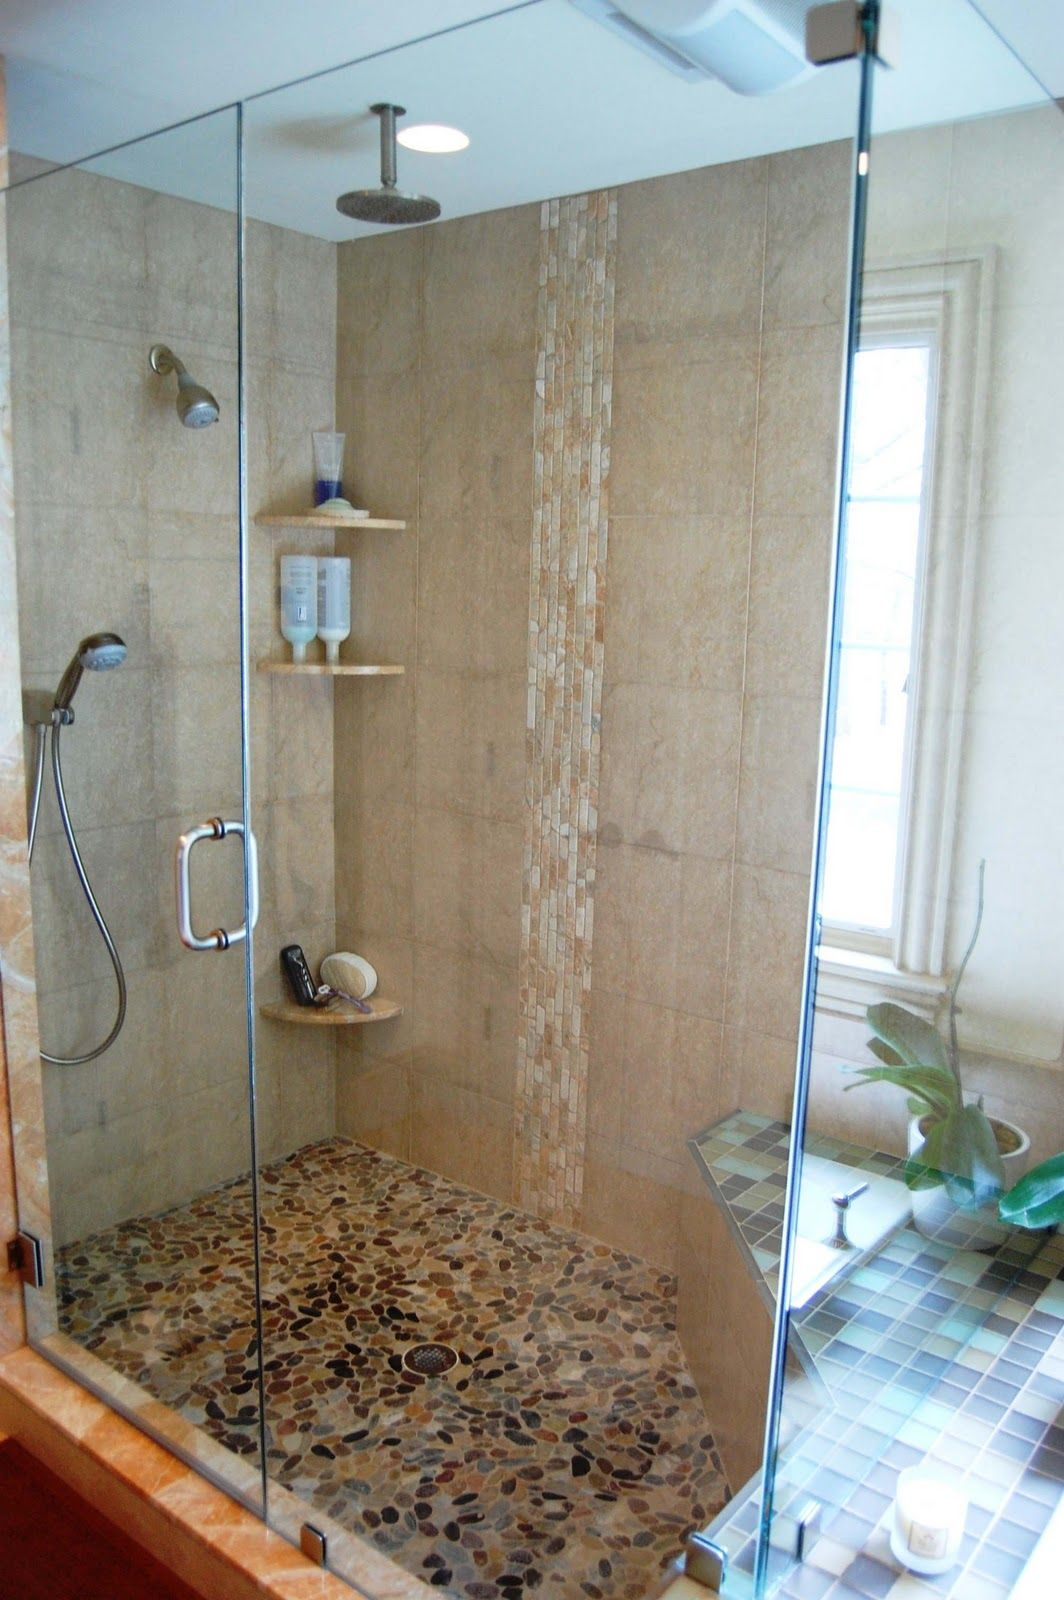 Bathroom shower ideas waterfall bedroom ideas interior